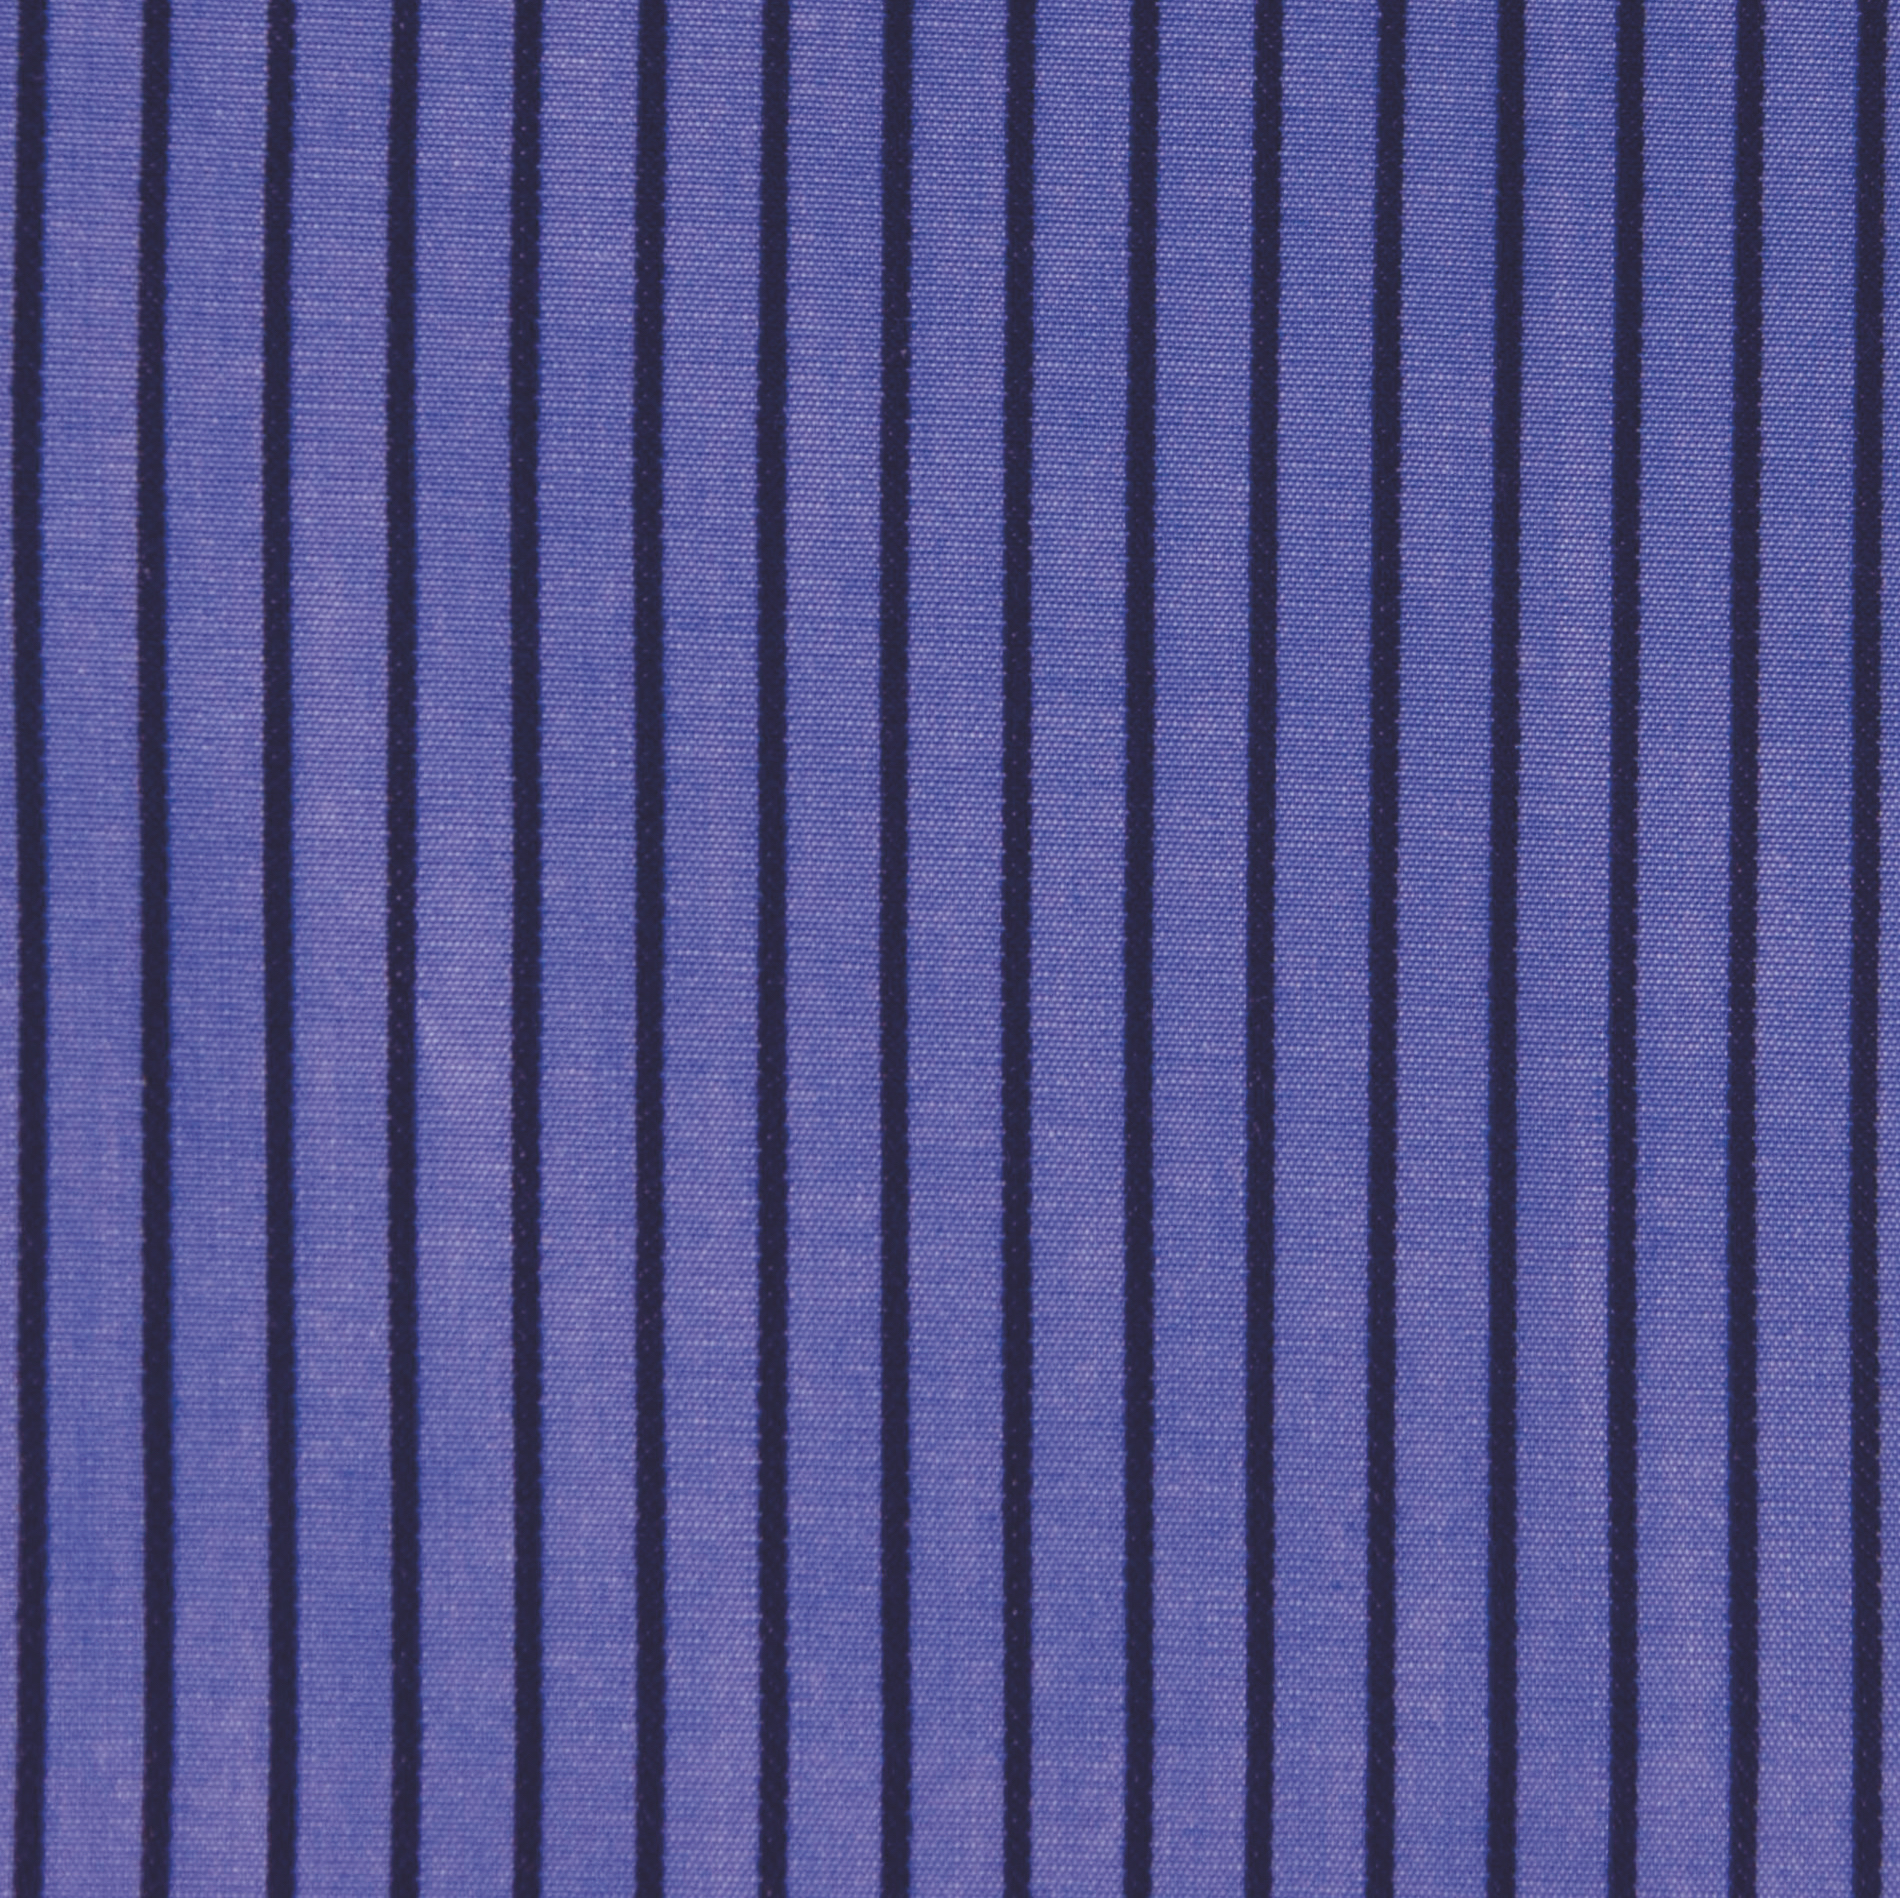 Buy tailor made shirts online - Presidents Range - Blue with Navy Stripe